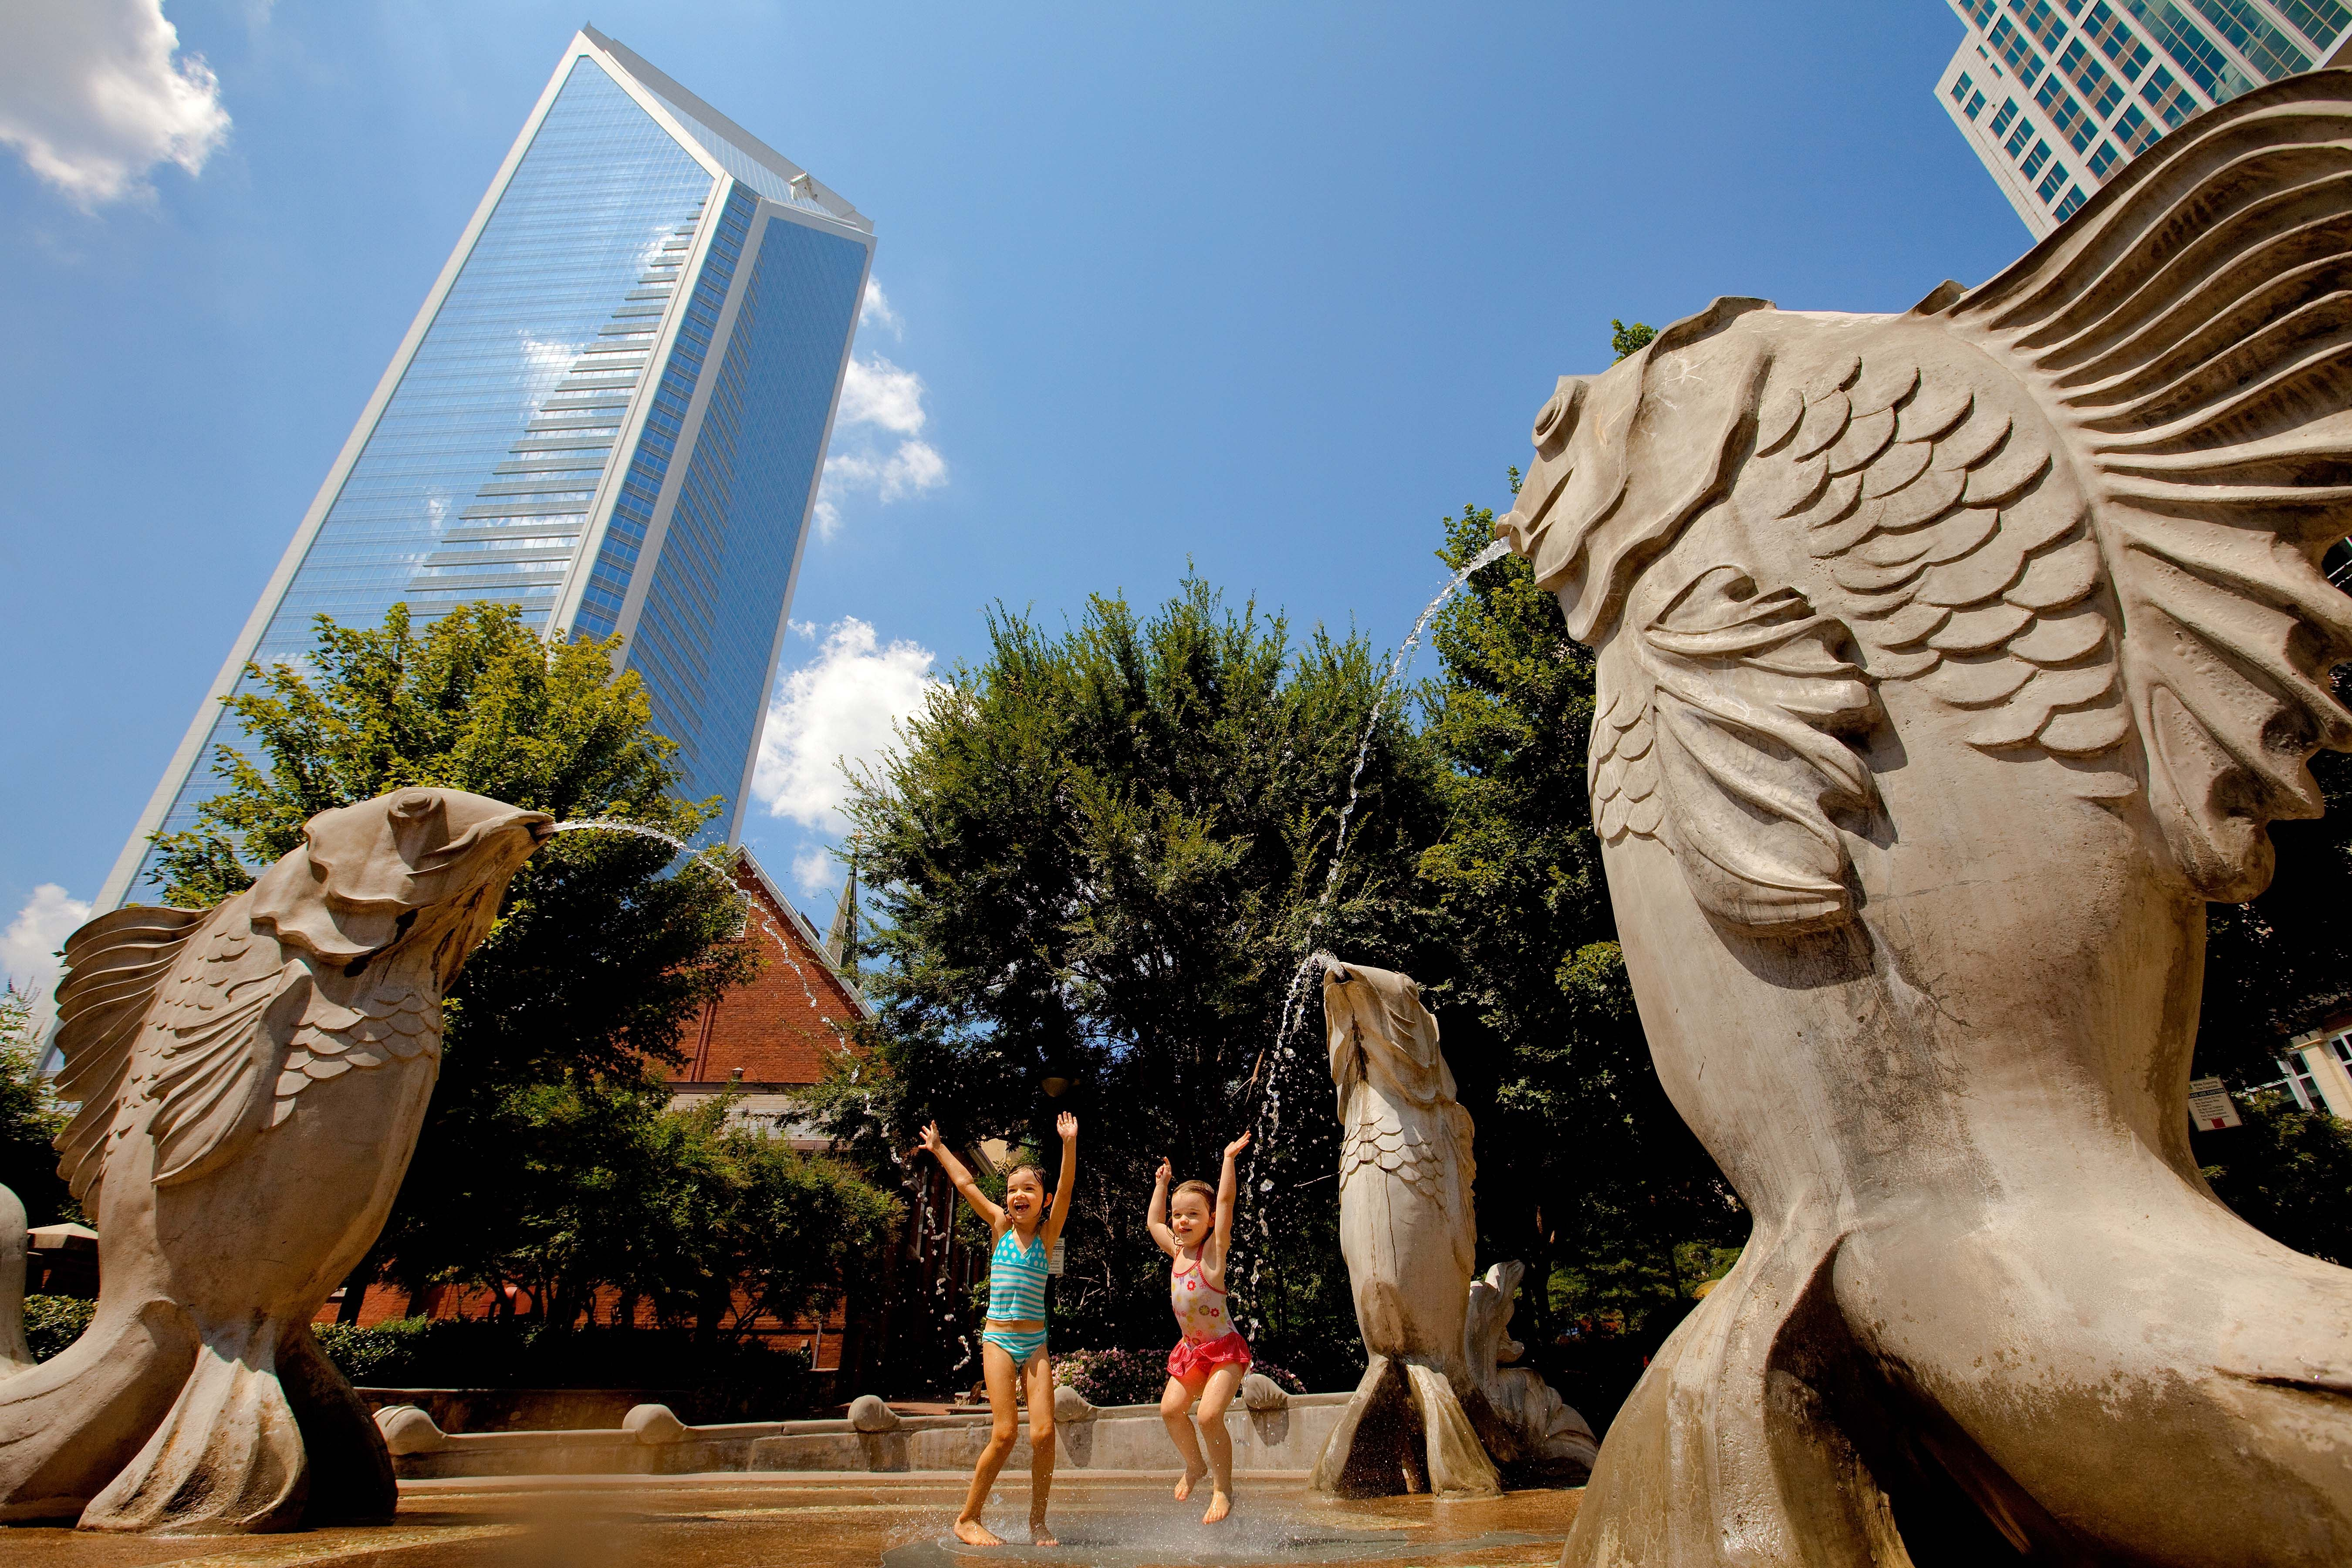 Take a self guided walking tour of Uptown Charlotte to discover